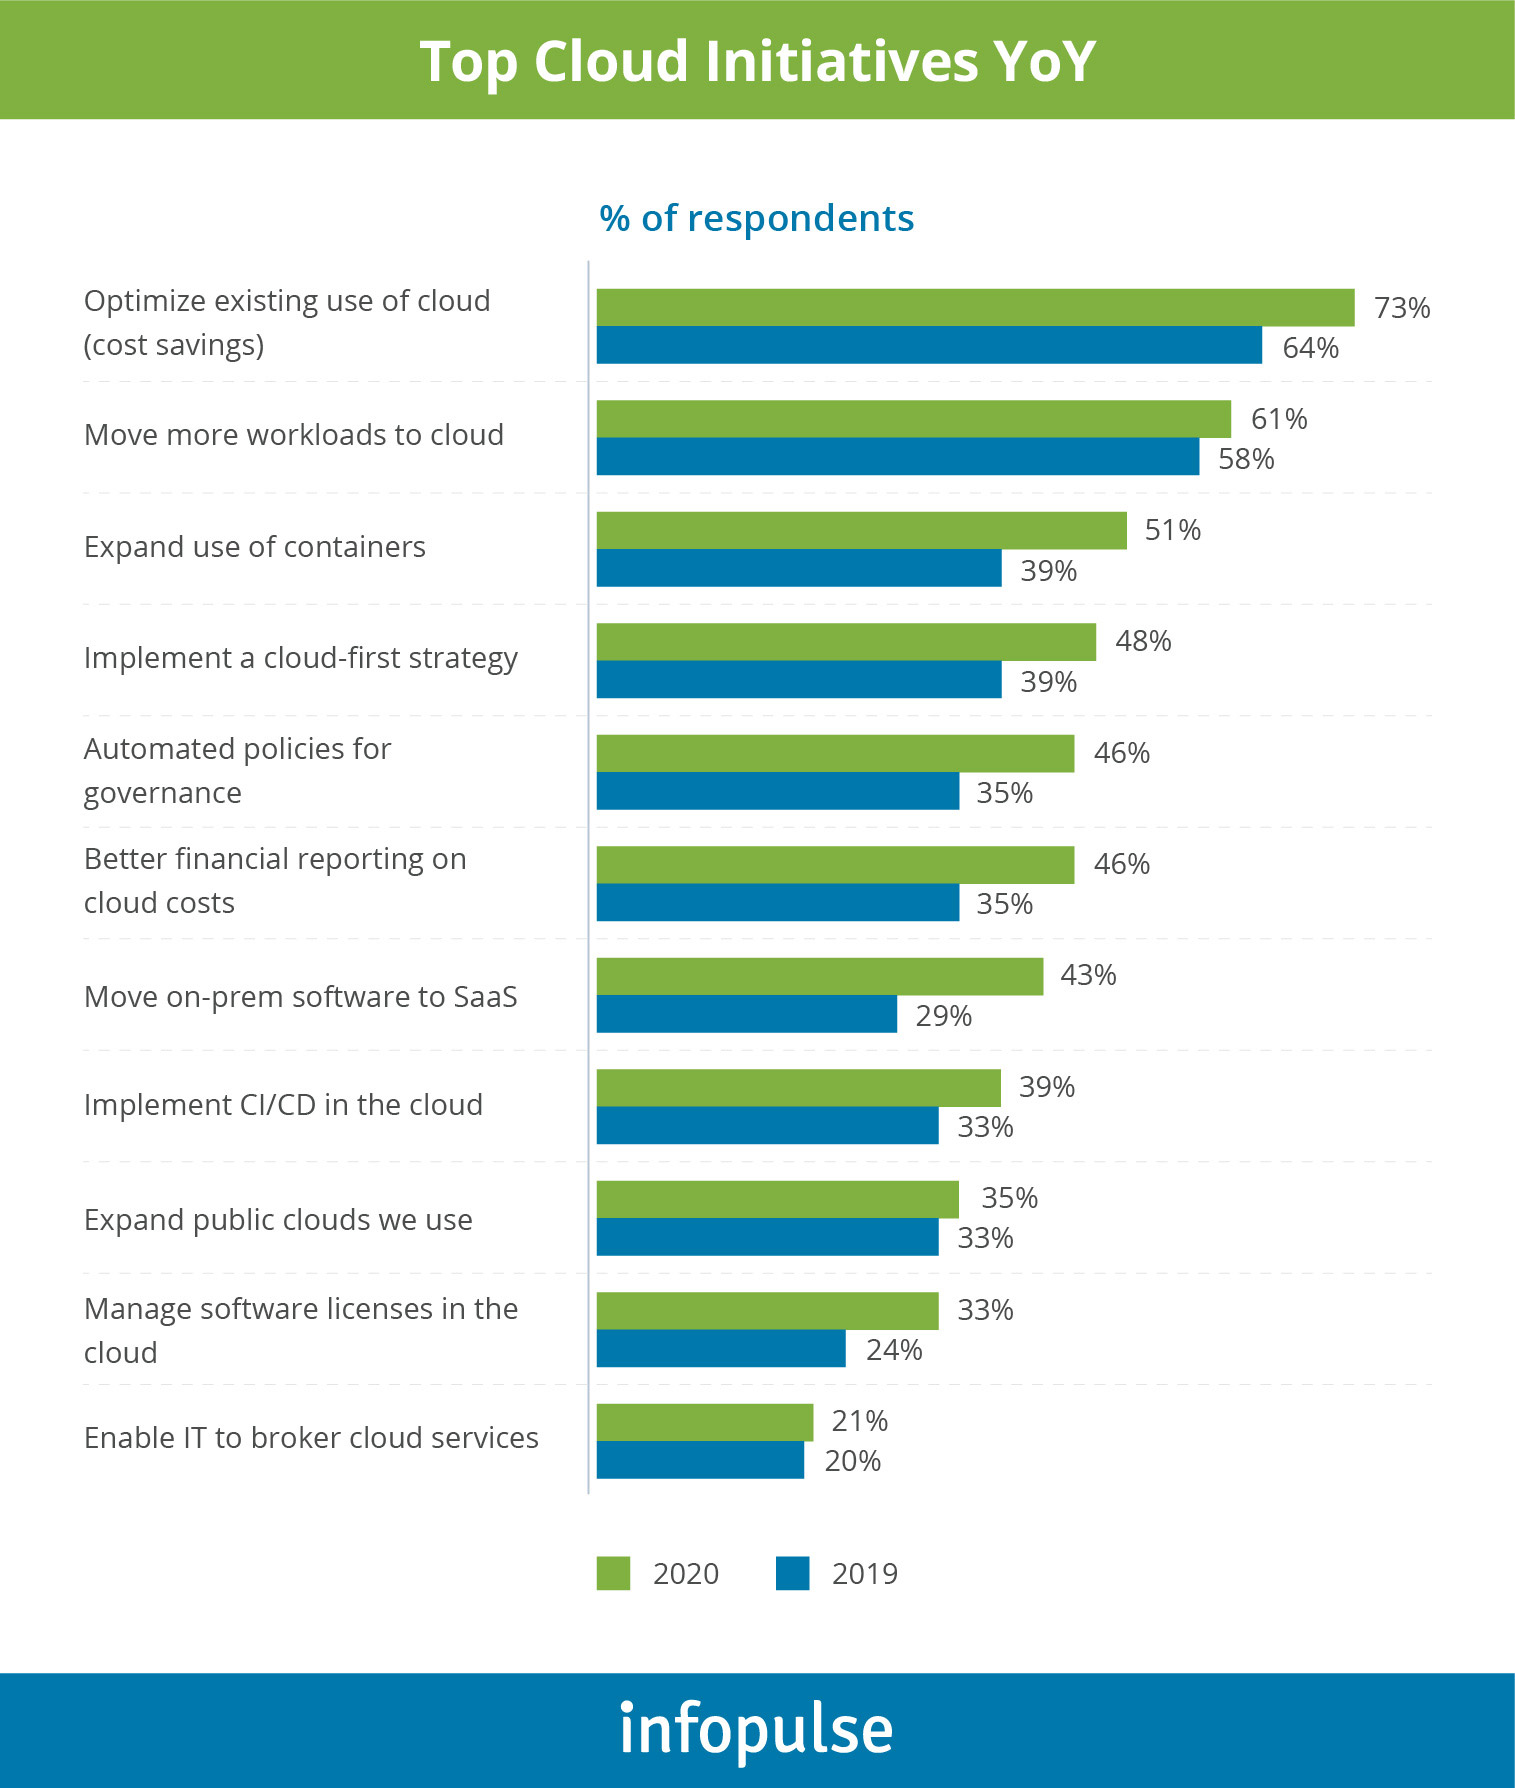 Top Cloud Initiatives from YoY - 3